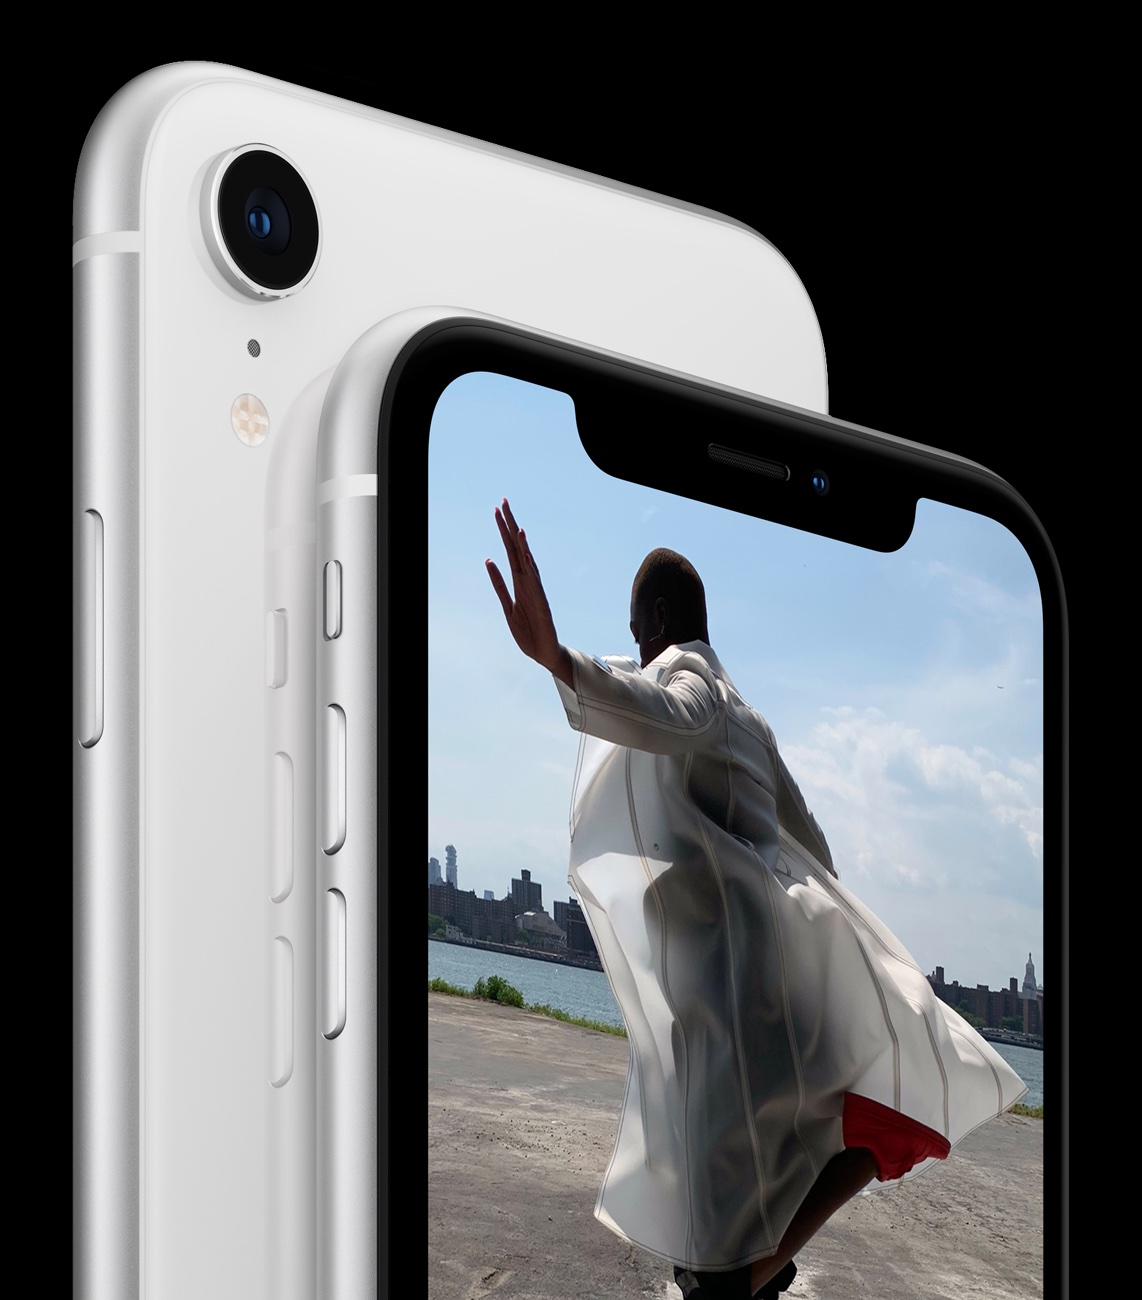 Apple examines ways to reduce unwanted motion when taking pics with